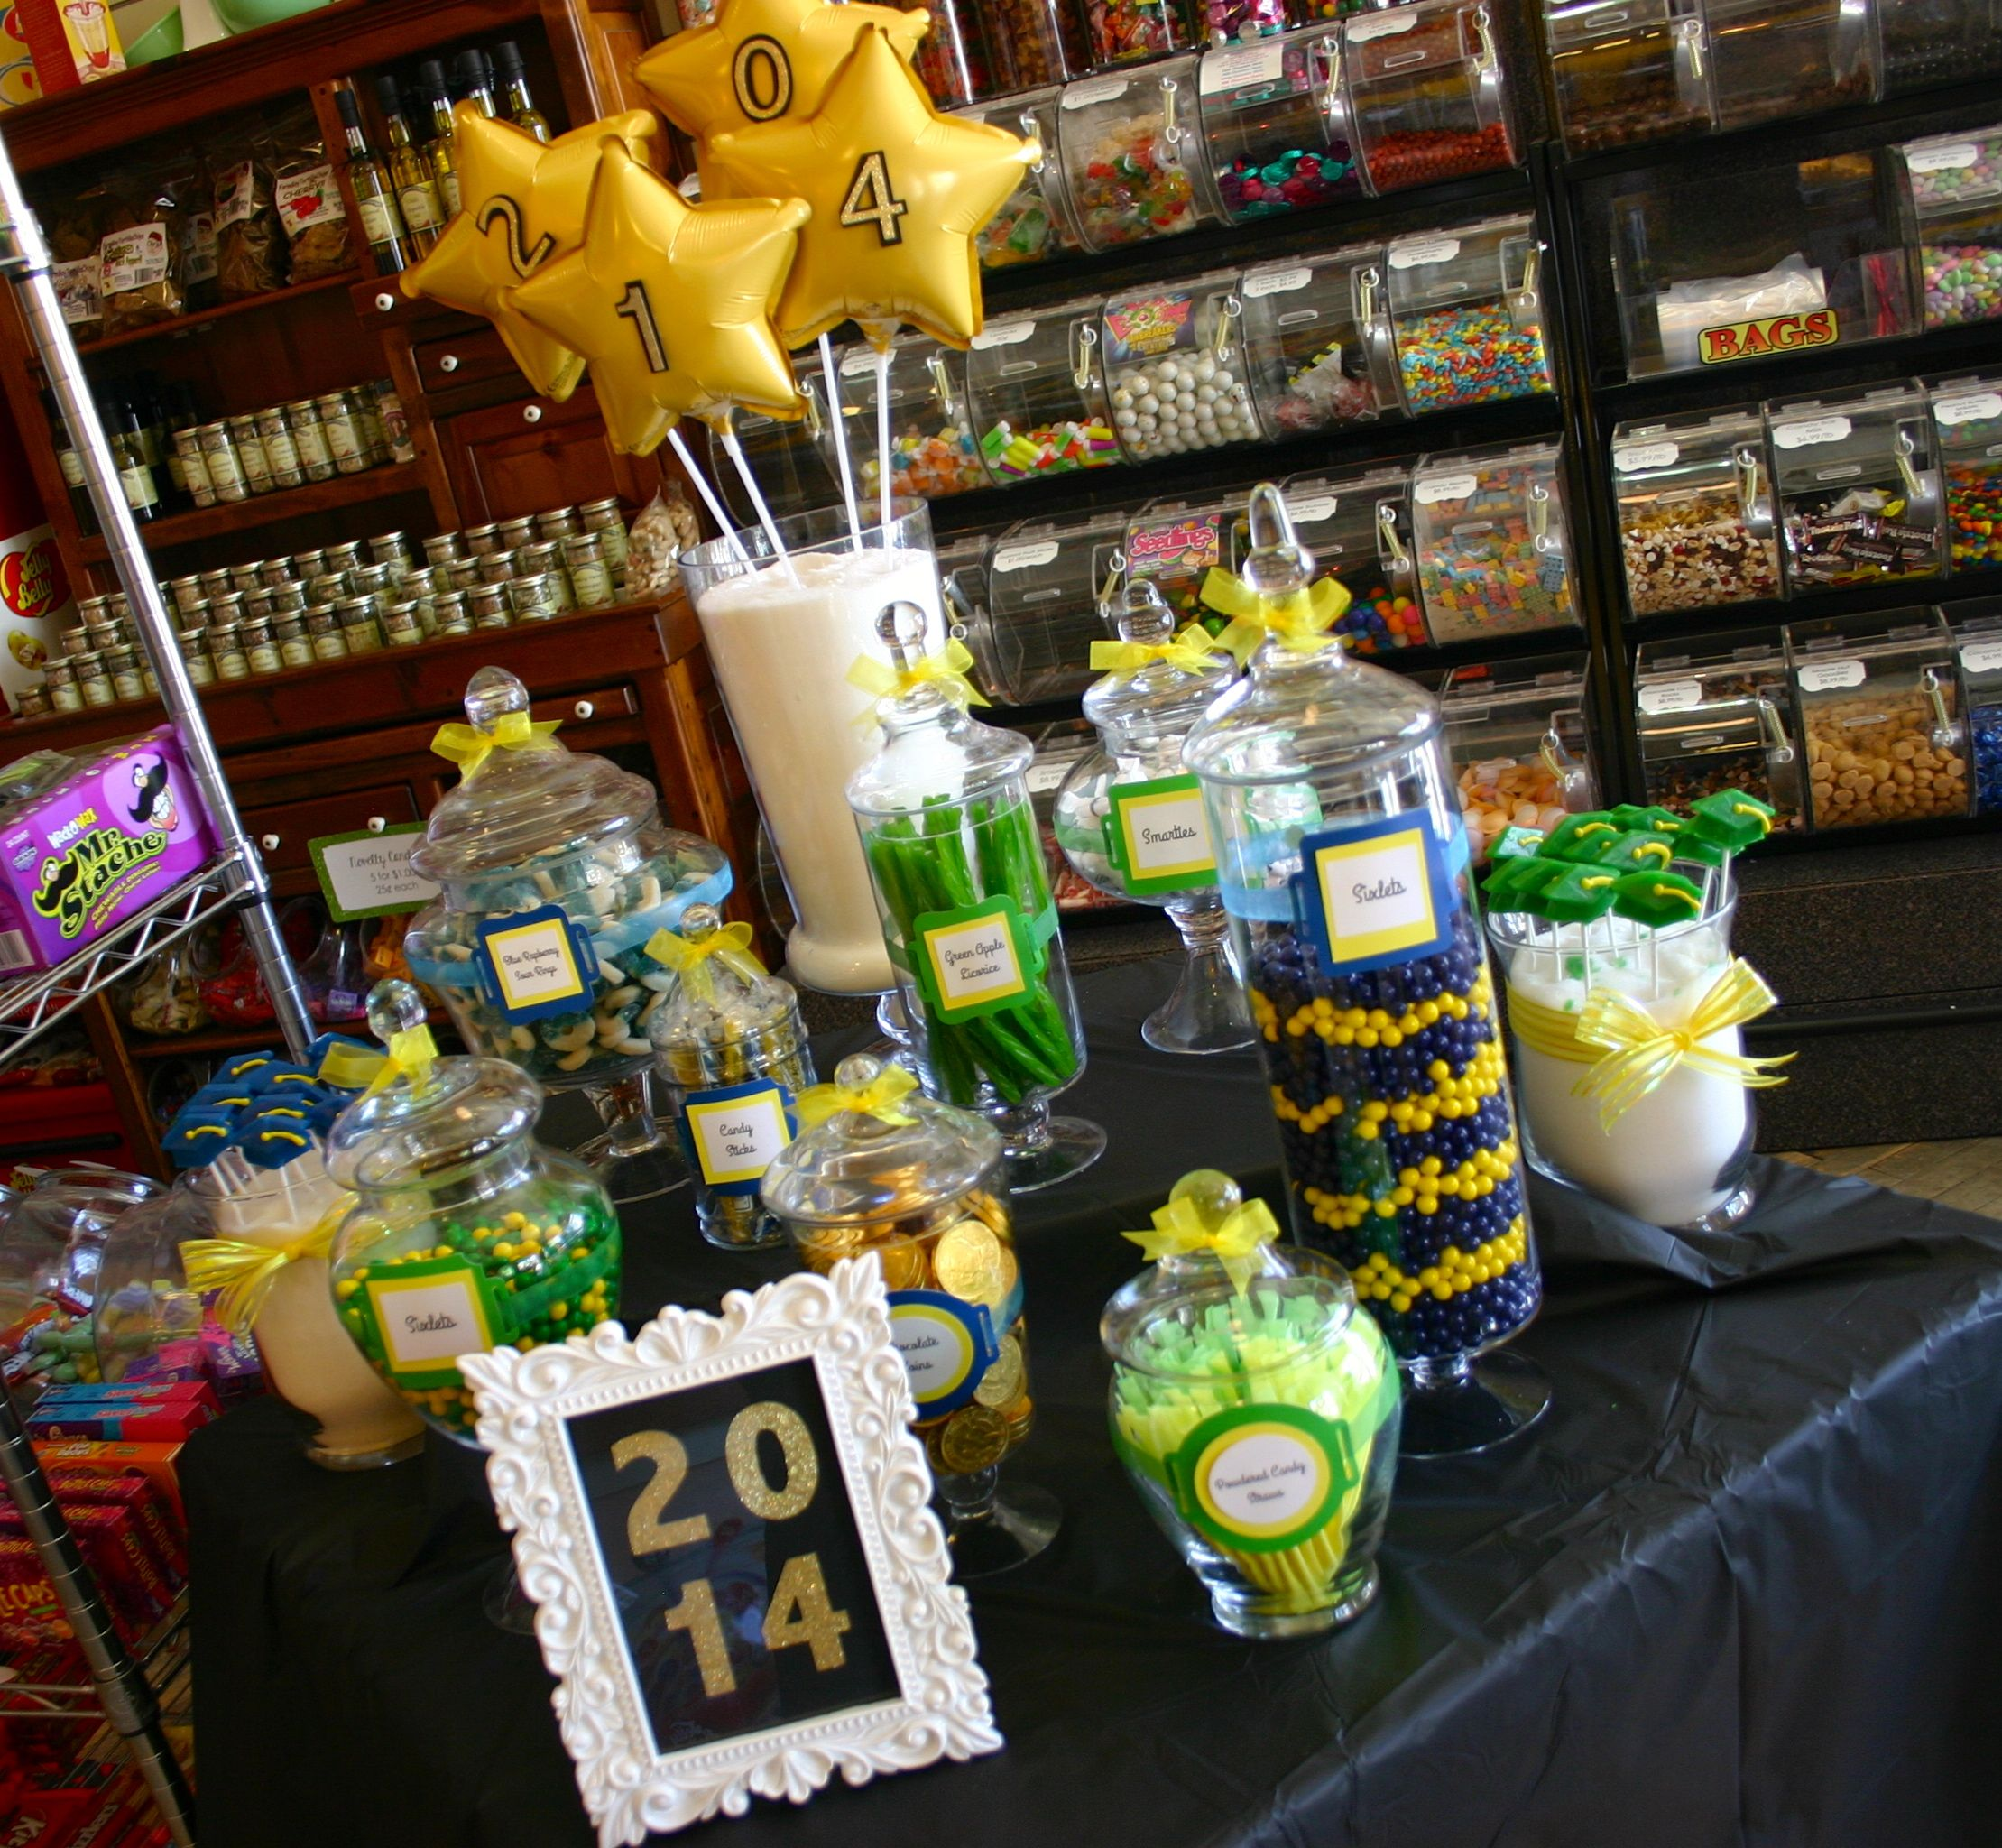 2014 graduation decorations - Candy Buffet Graduation Table Sign Class Of 2014 Sweethearts Co Lapeer Michigan Green And